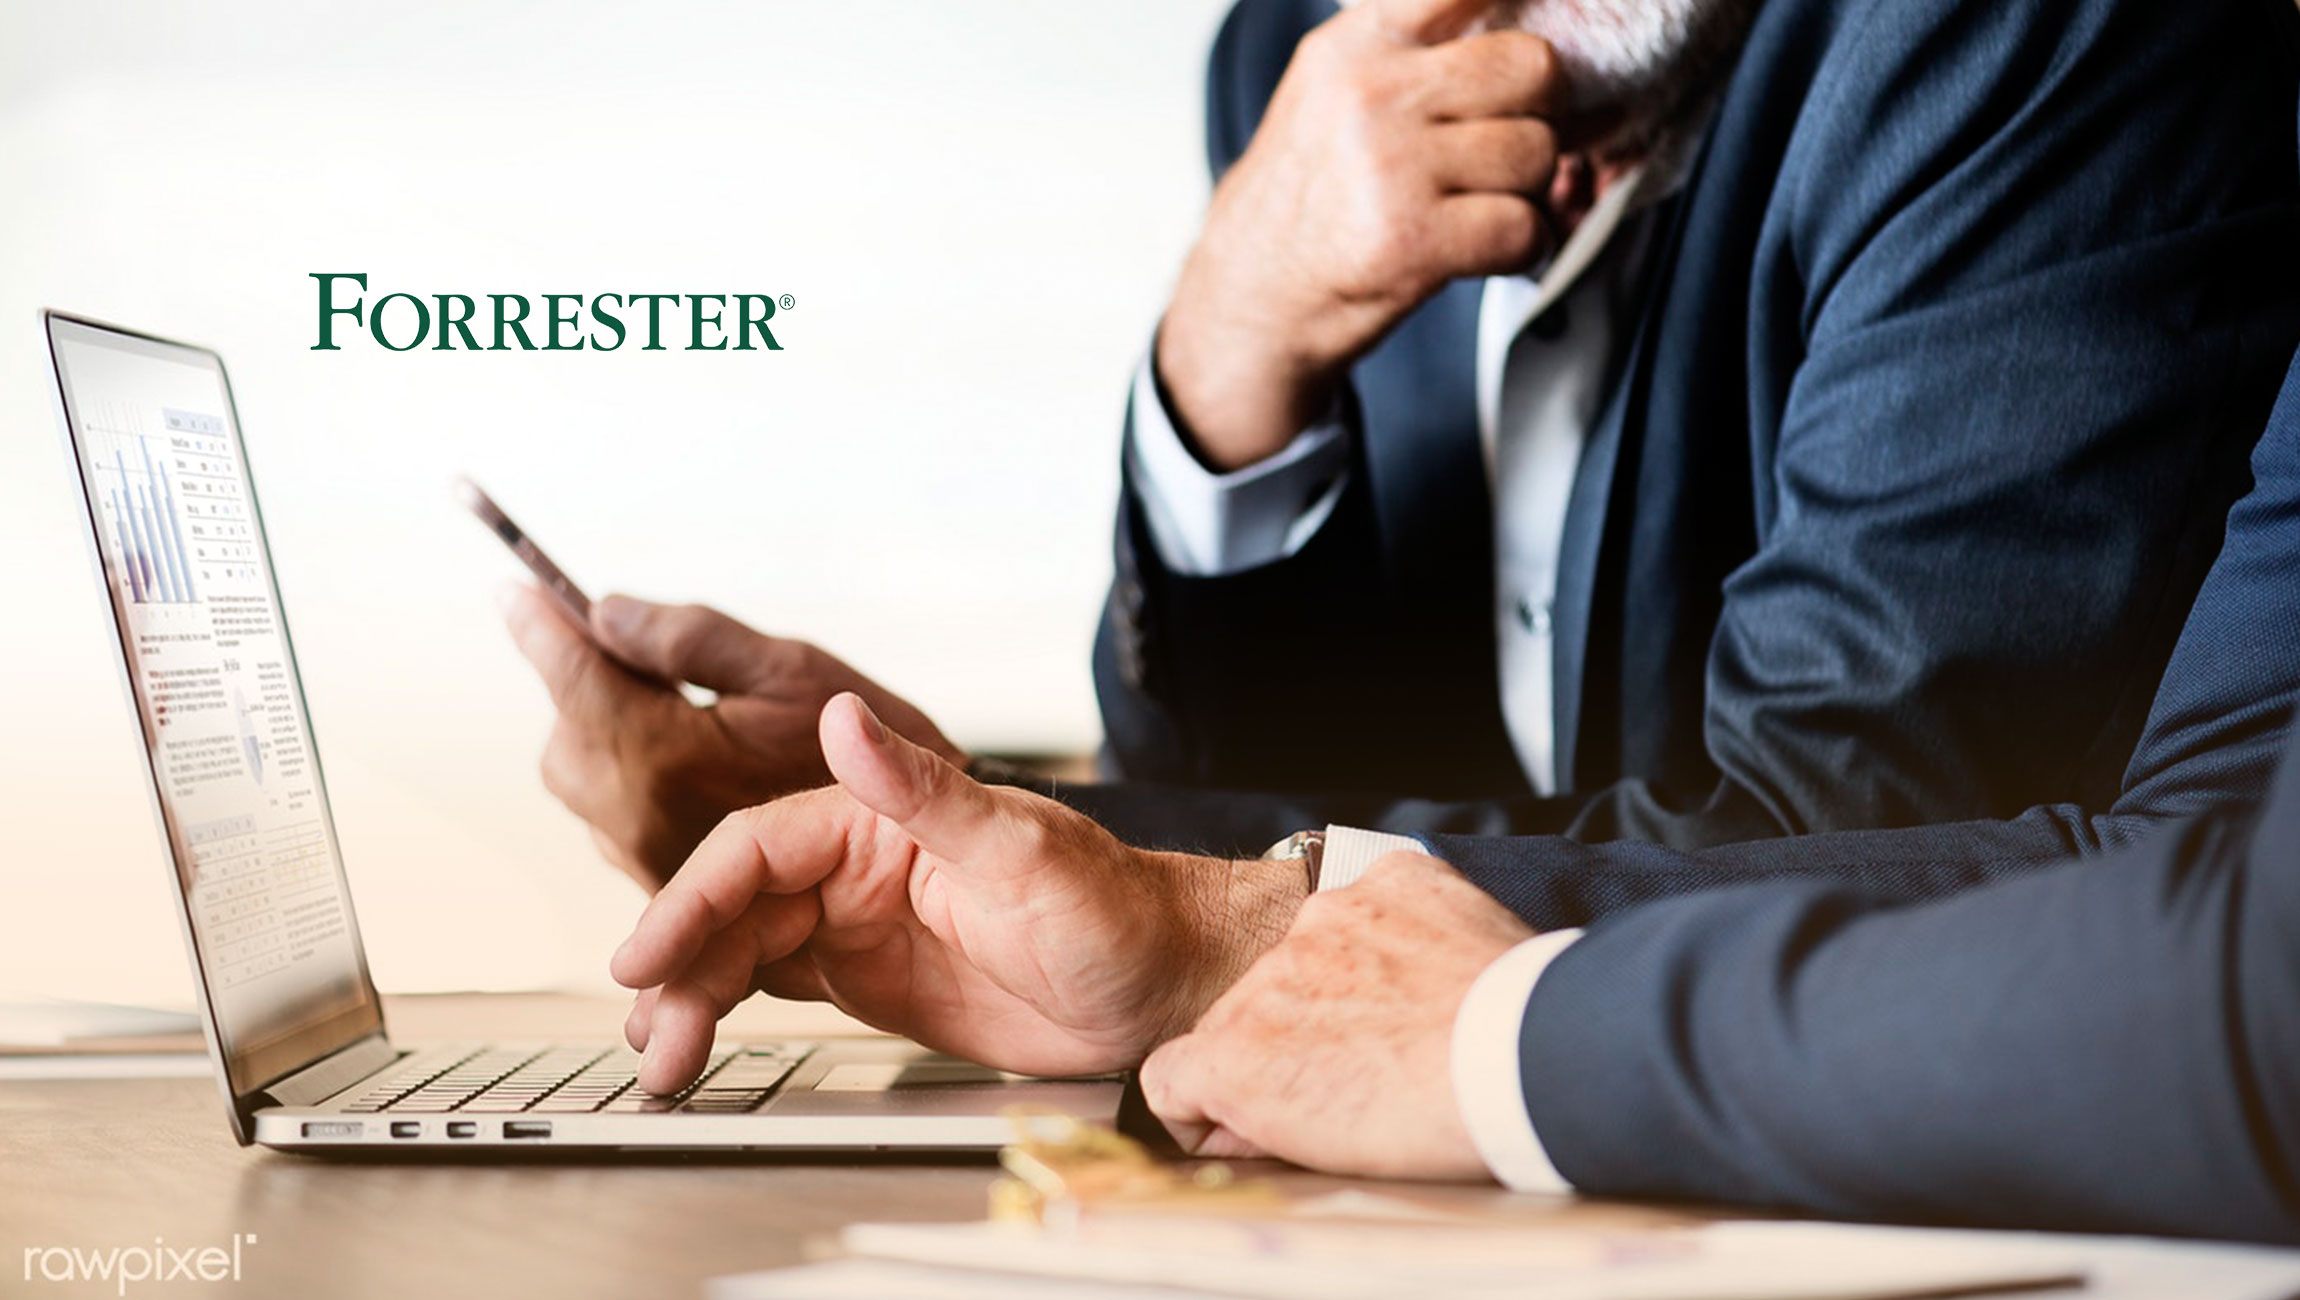 Forrester: The Time Is Now For CX And Marketing Professionals To Transform Customer Experience